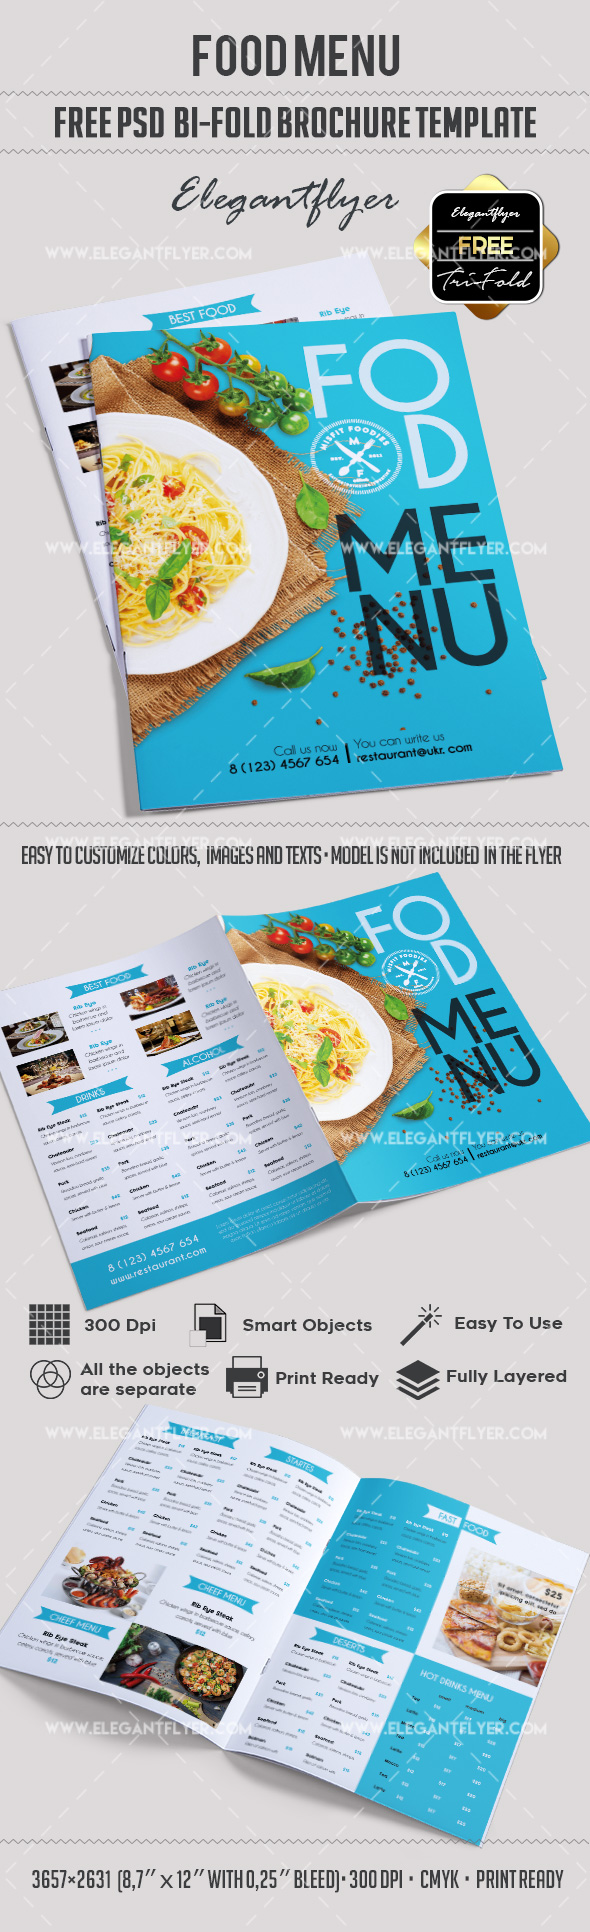 Free Bi-Fold Cafe Menu PSD Brochure